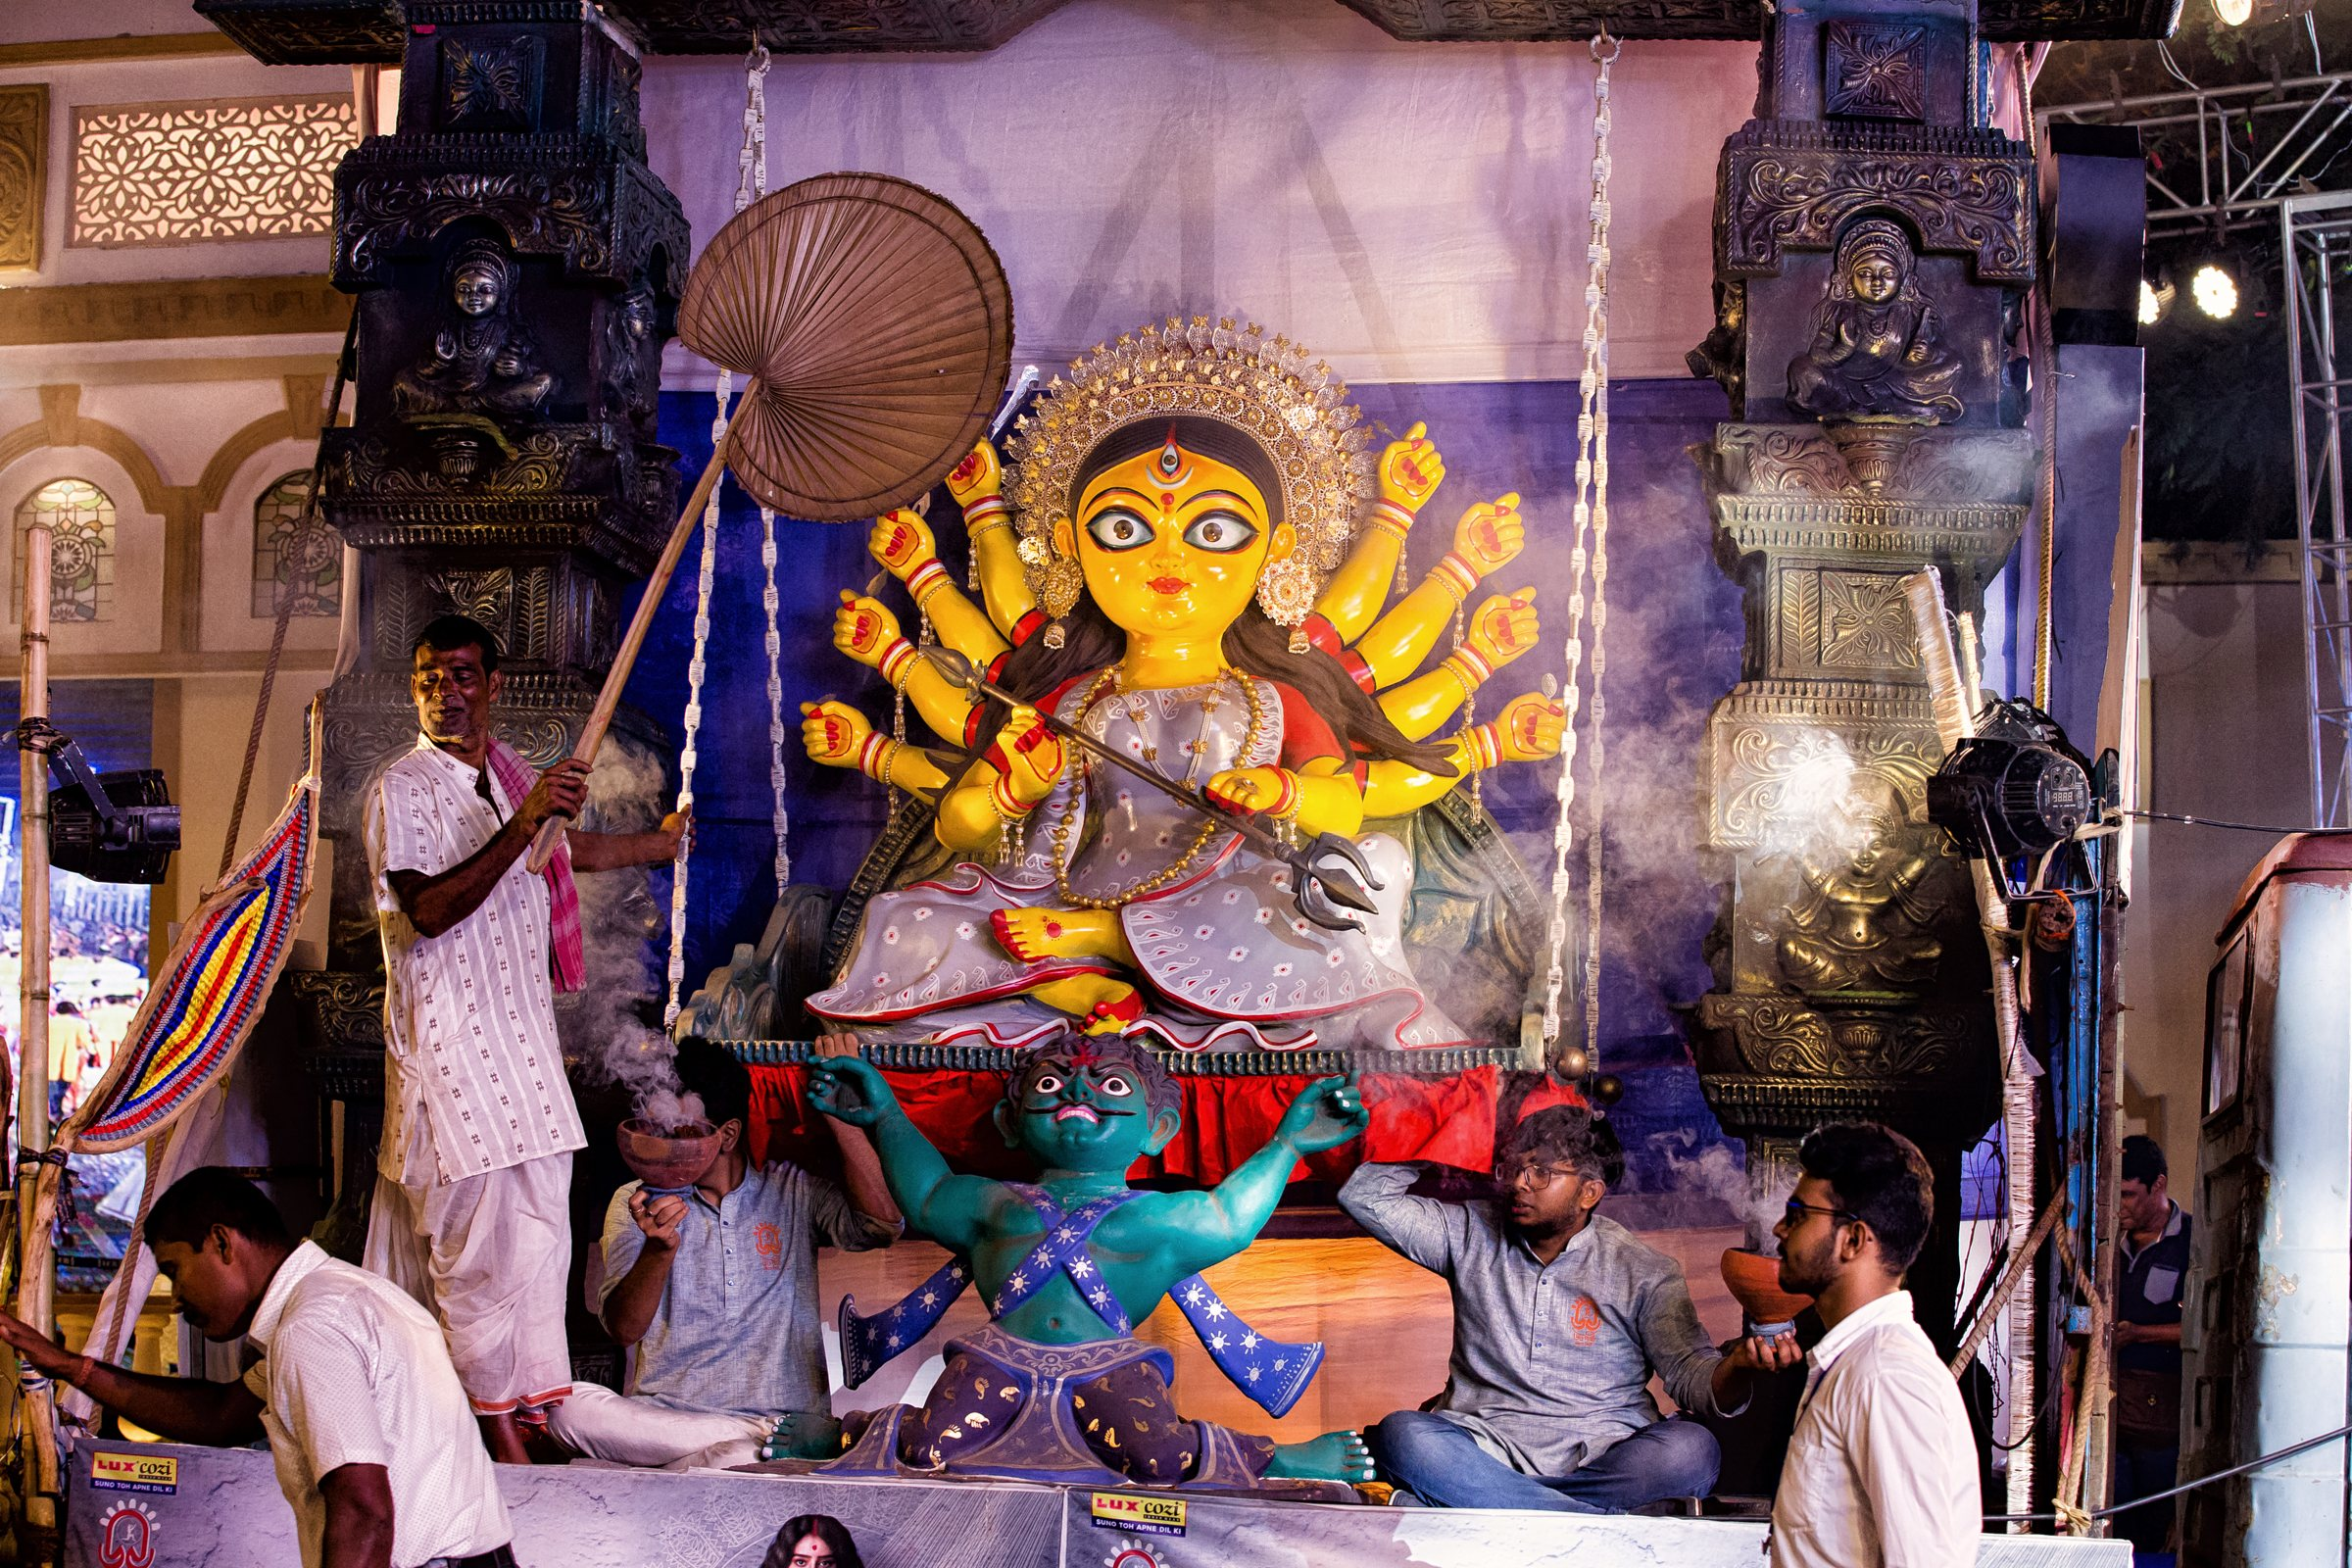 Large-scale idols of Maa Durga are set up across the city for people to worship